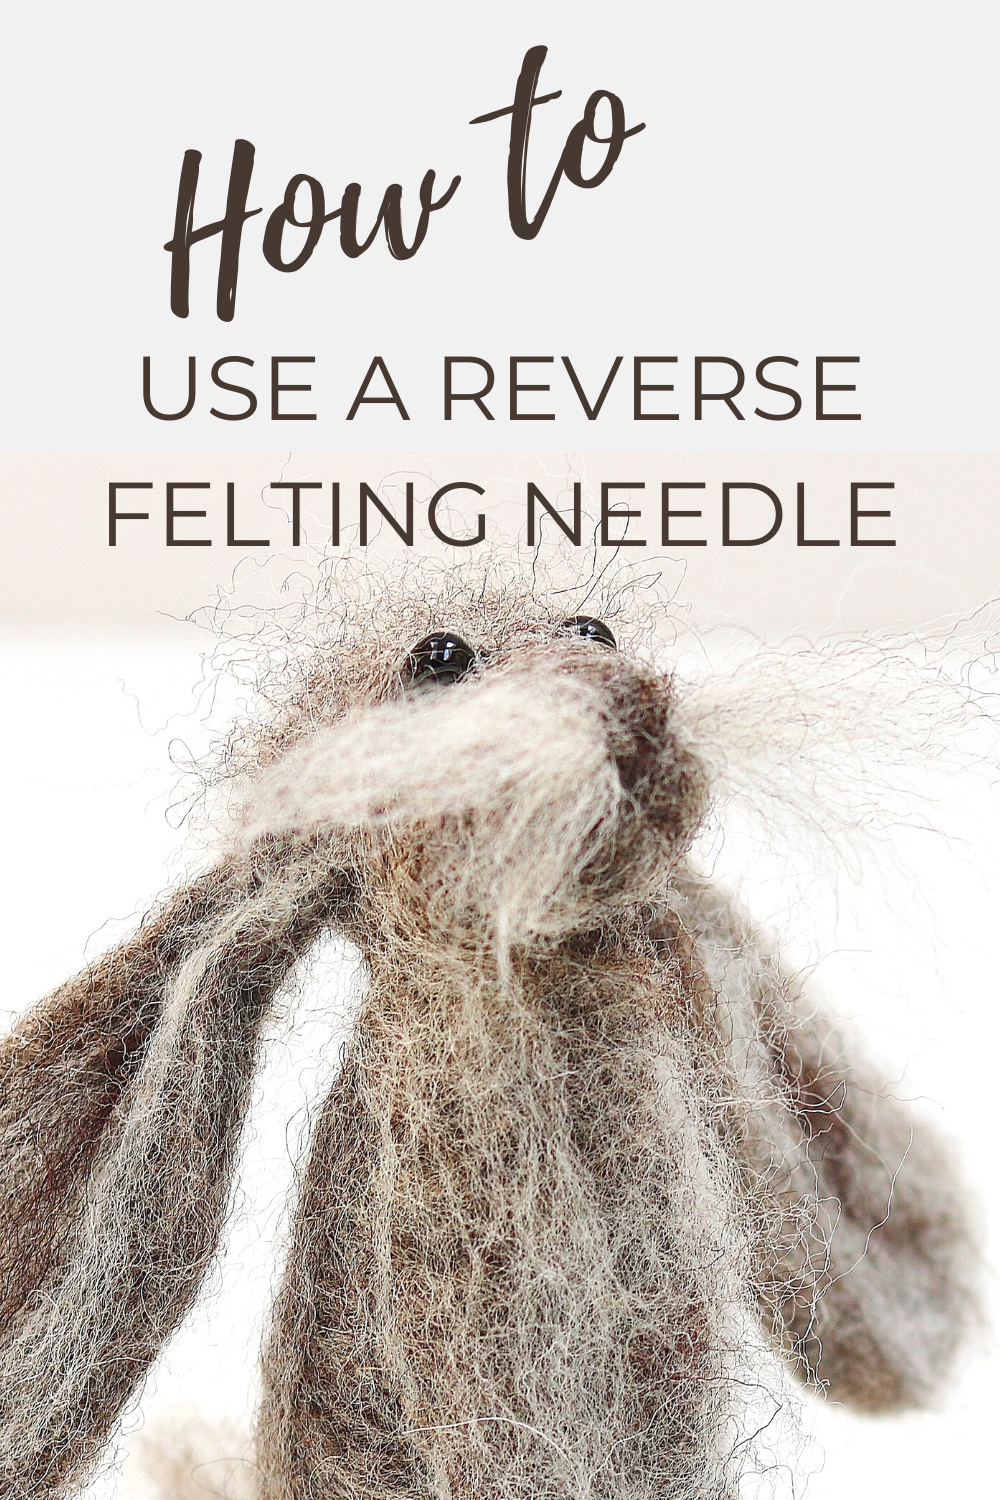 What size felting needle should I use?